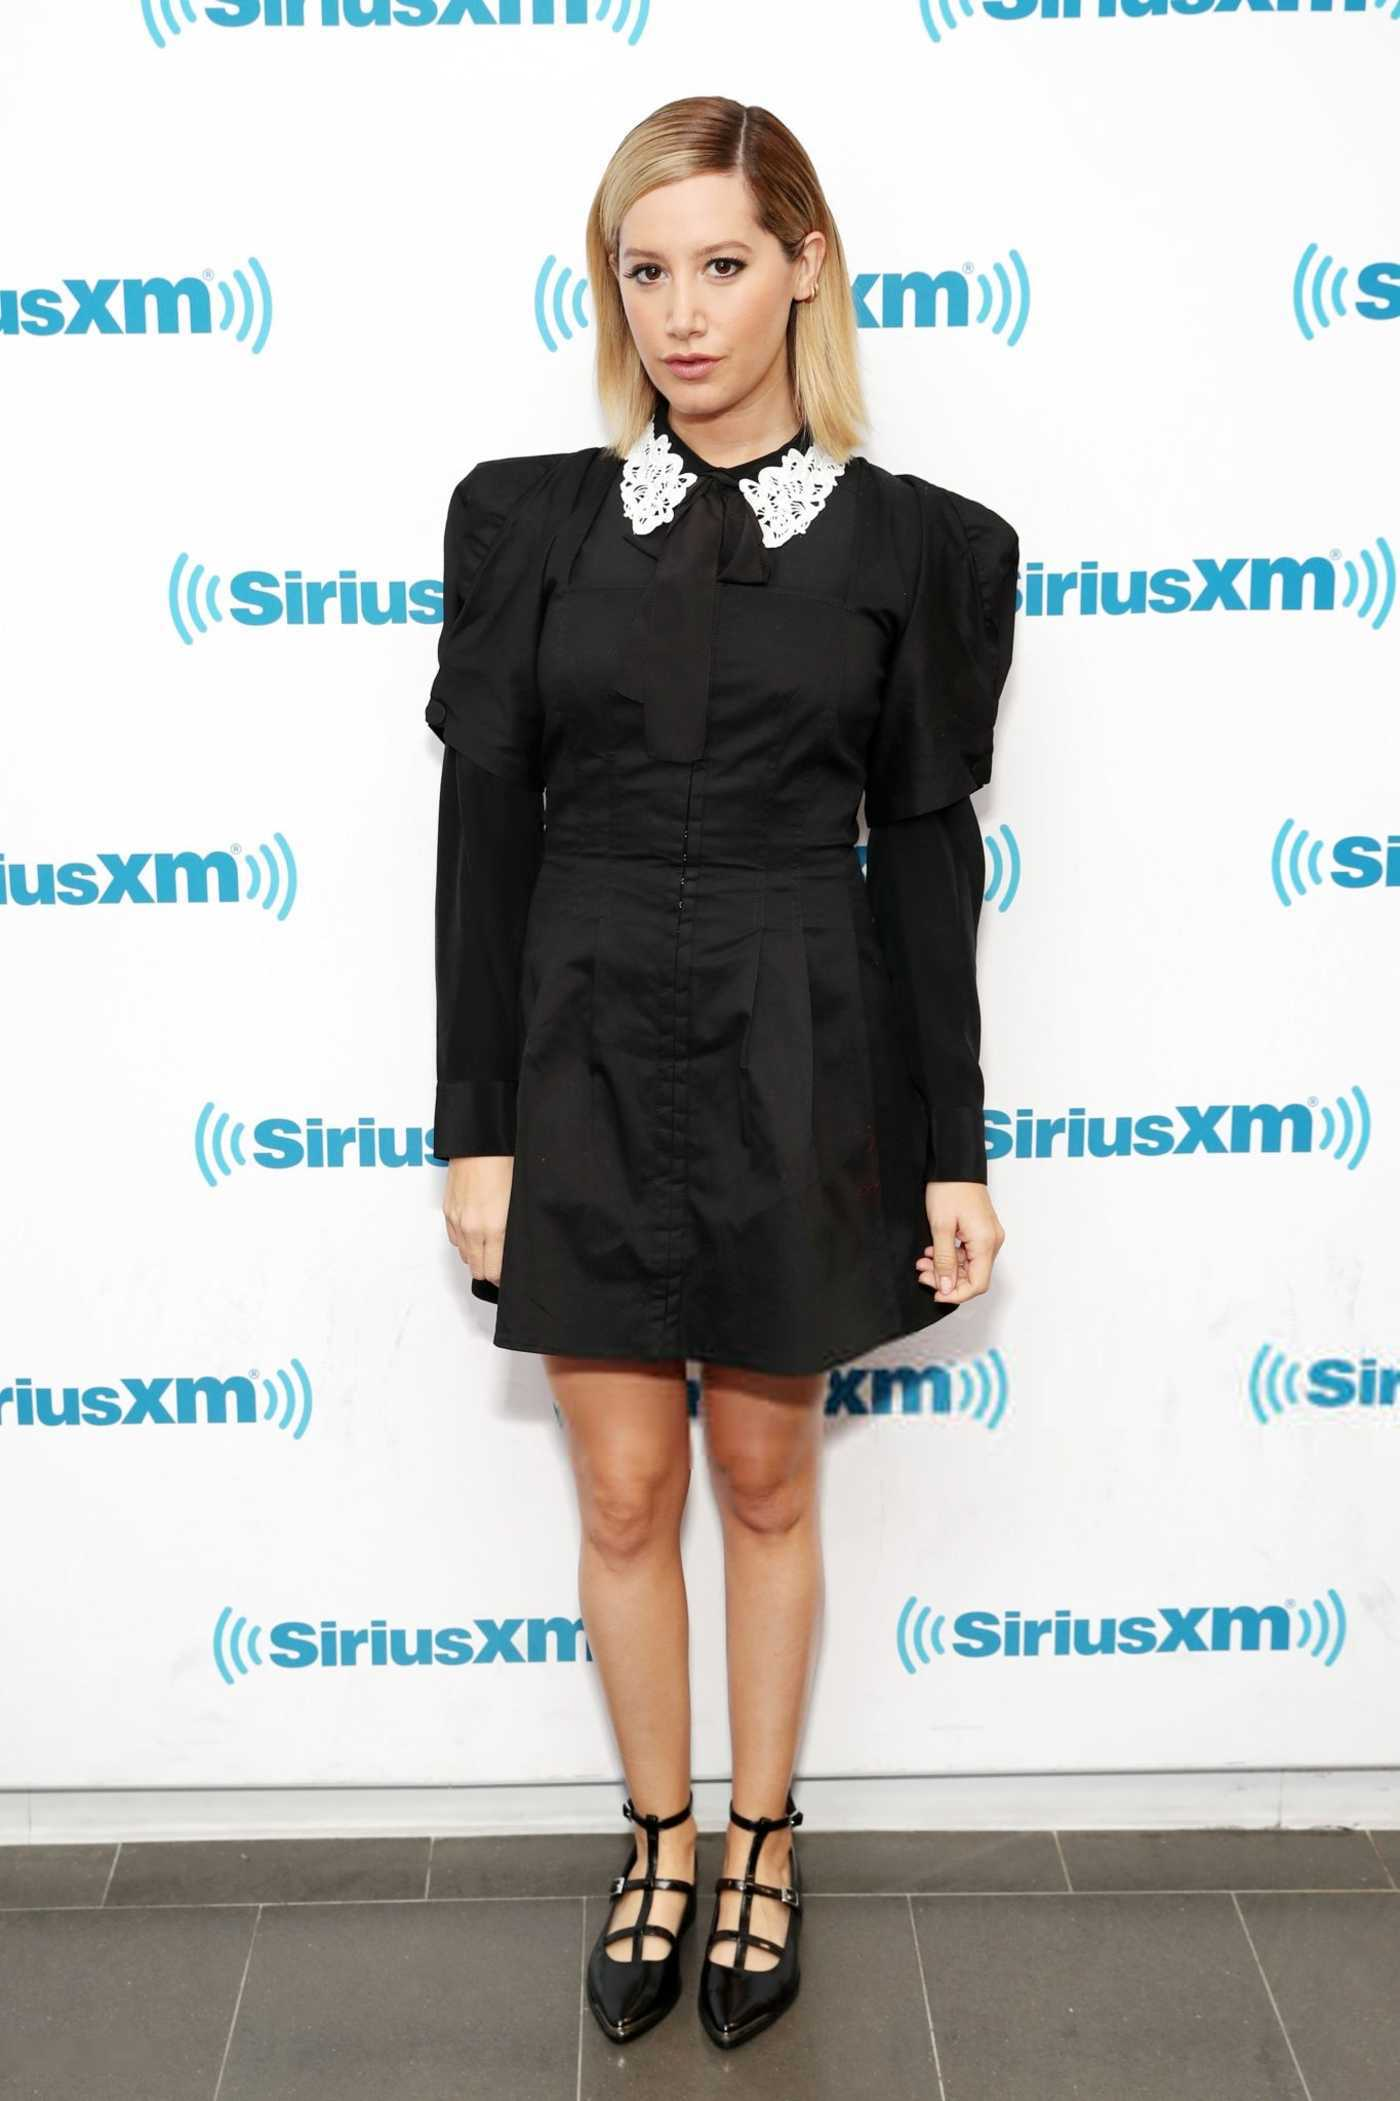 Ashley Tisdale Visits the SiriusXM Studios in New York City 11/13/2018